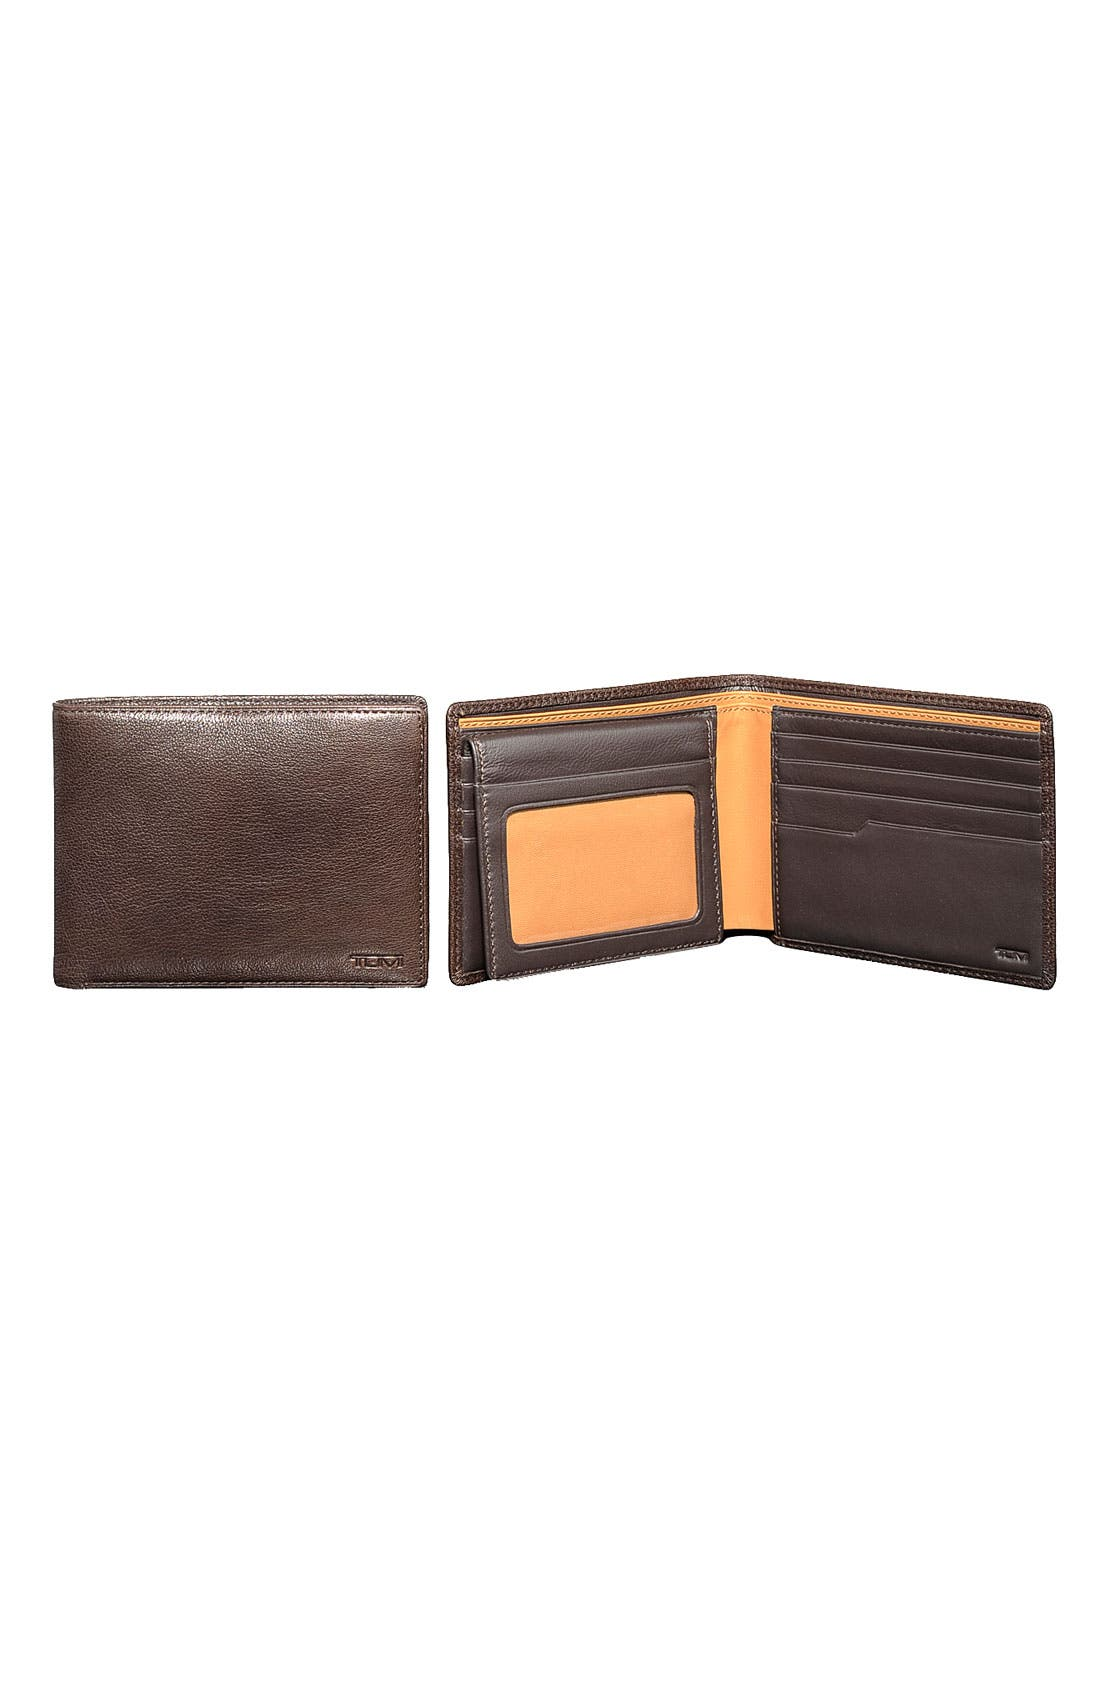 Alternate Image 1 Selected - Tumi 'Sierra - Global' Removable Passcase ID Wallet